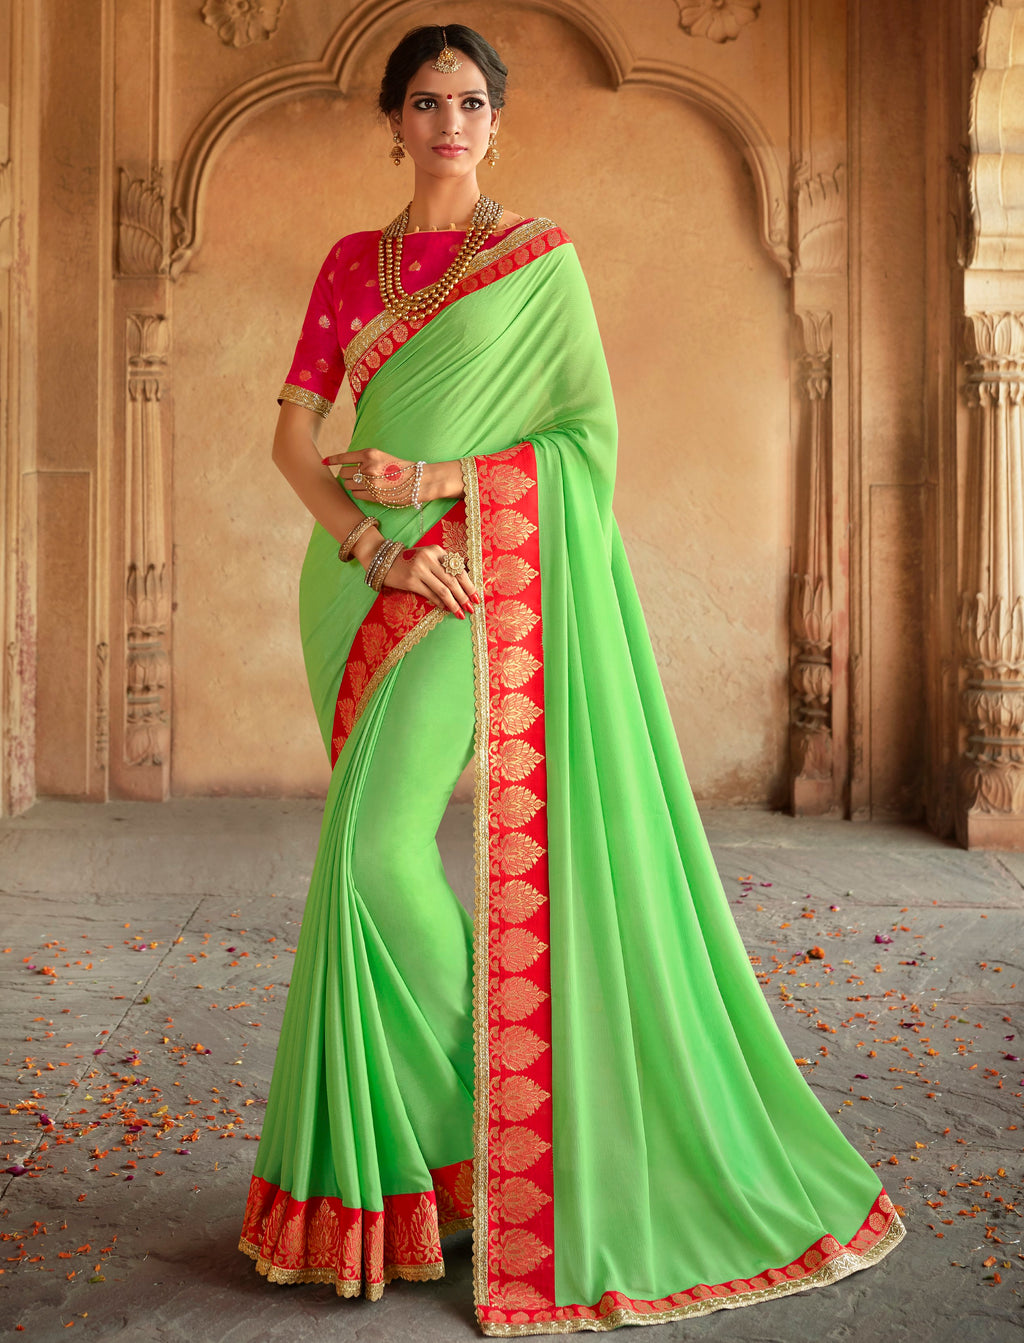 Green Color Wrinkle Chiffon Designer Party Wear Sarees  Anyra Suhani Catlog SJ-10376